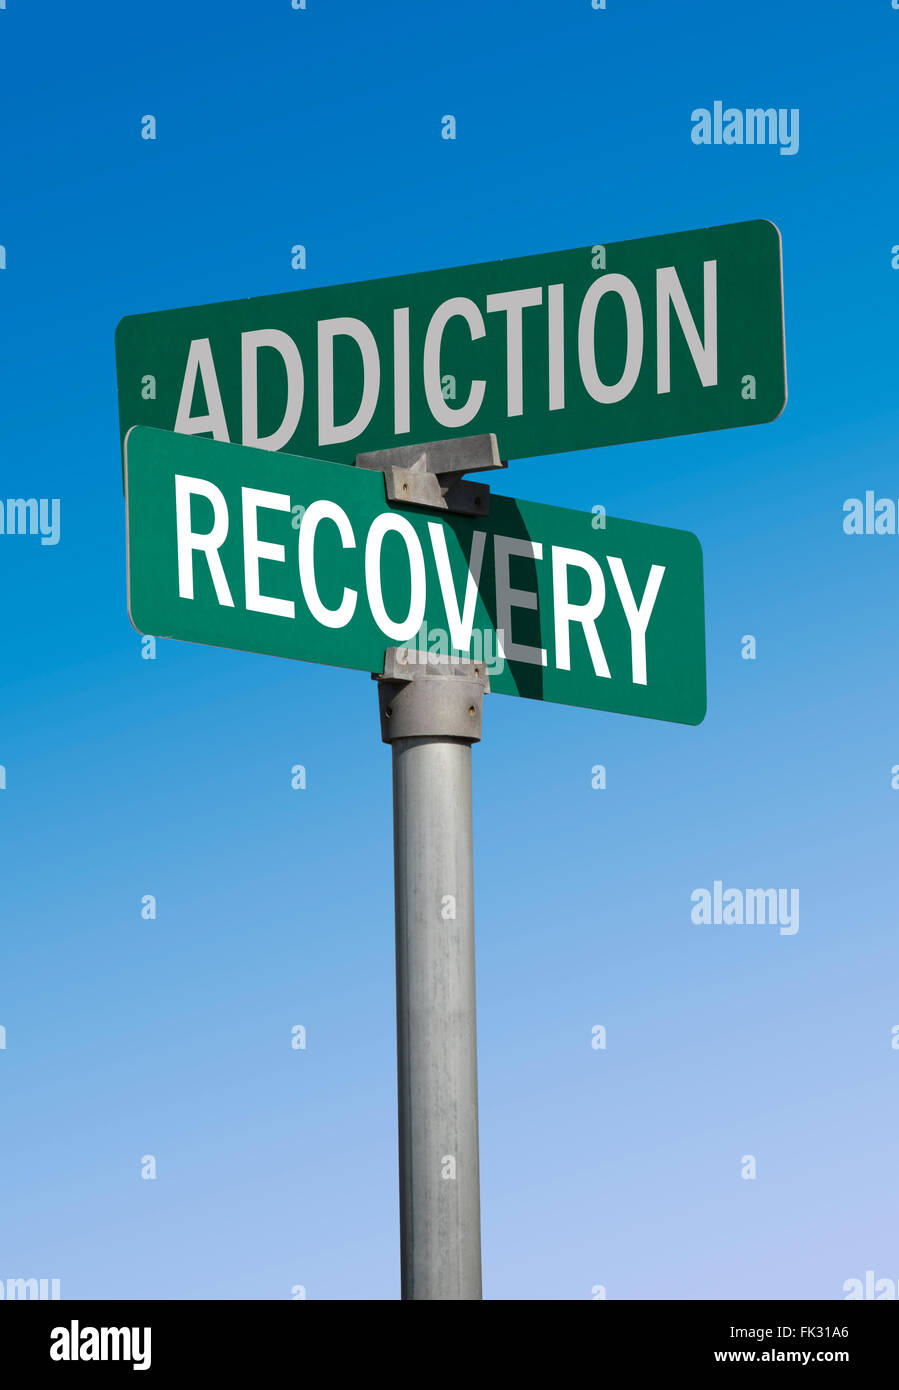 green street sign addiction and recovery - Stock Image